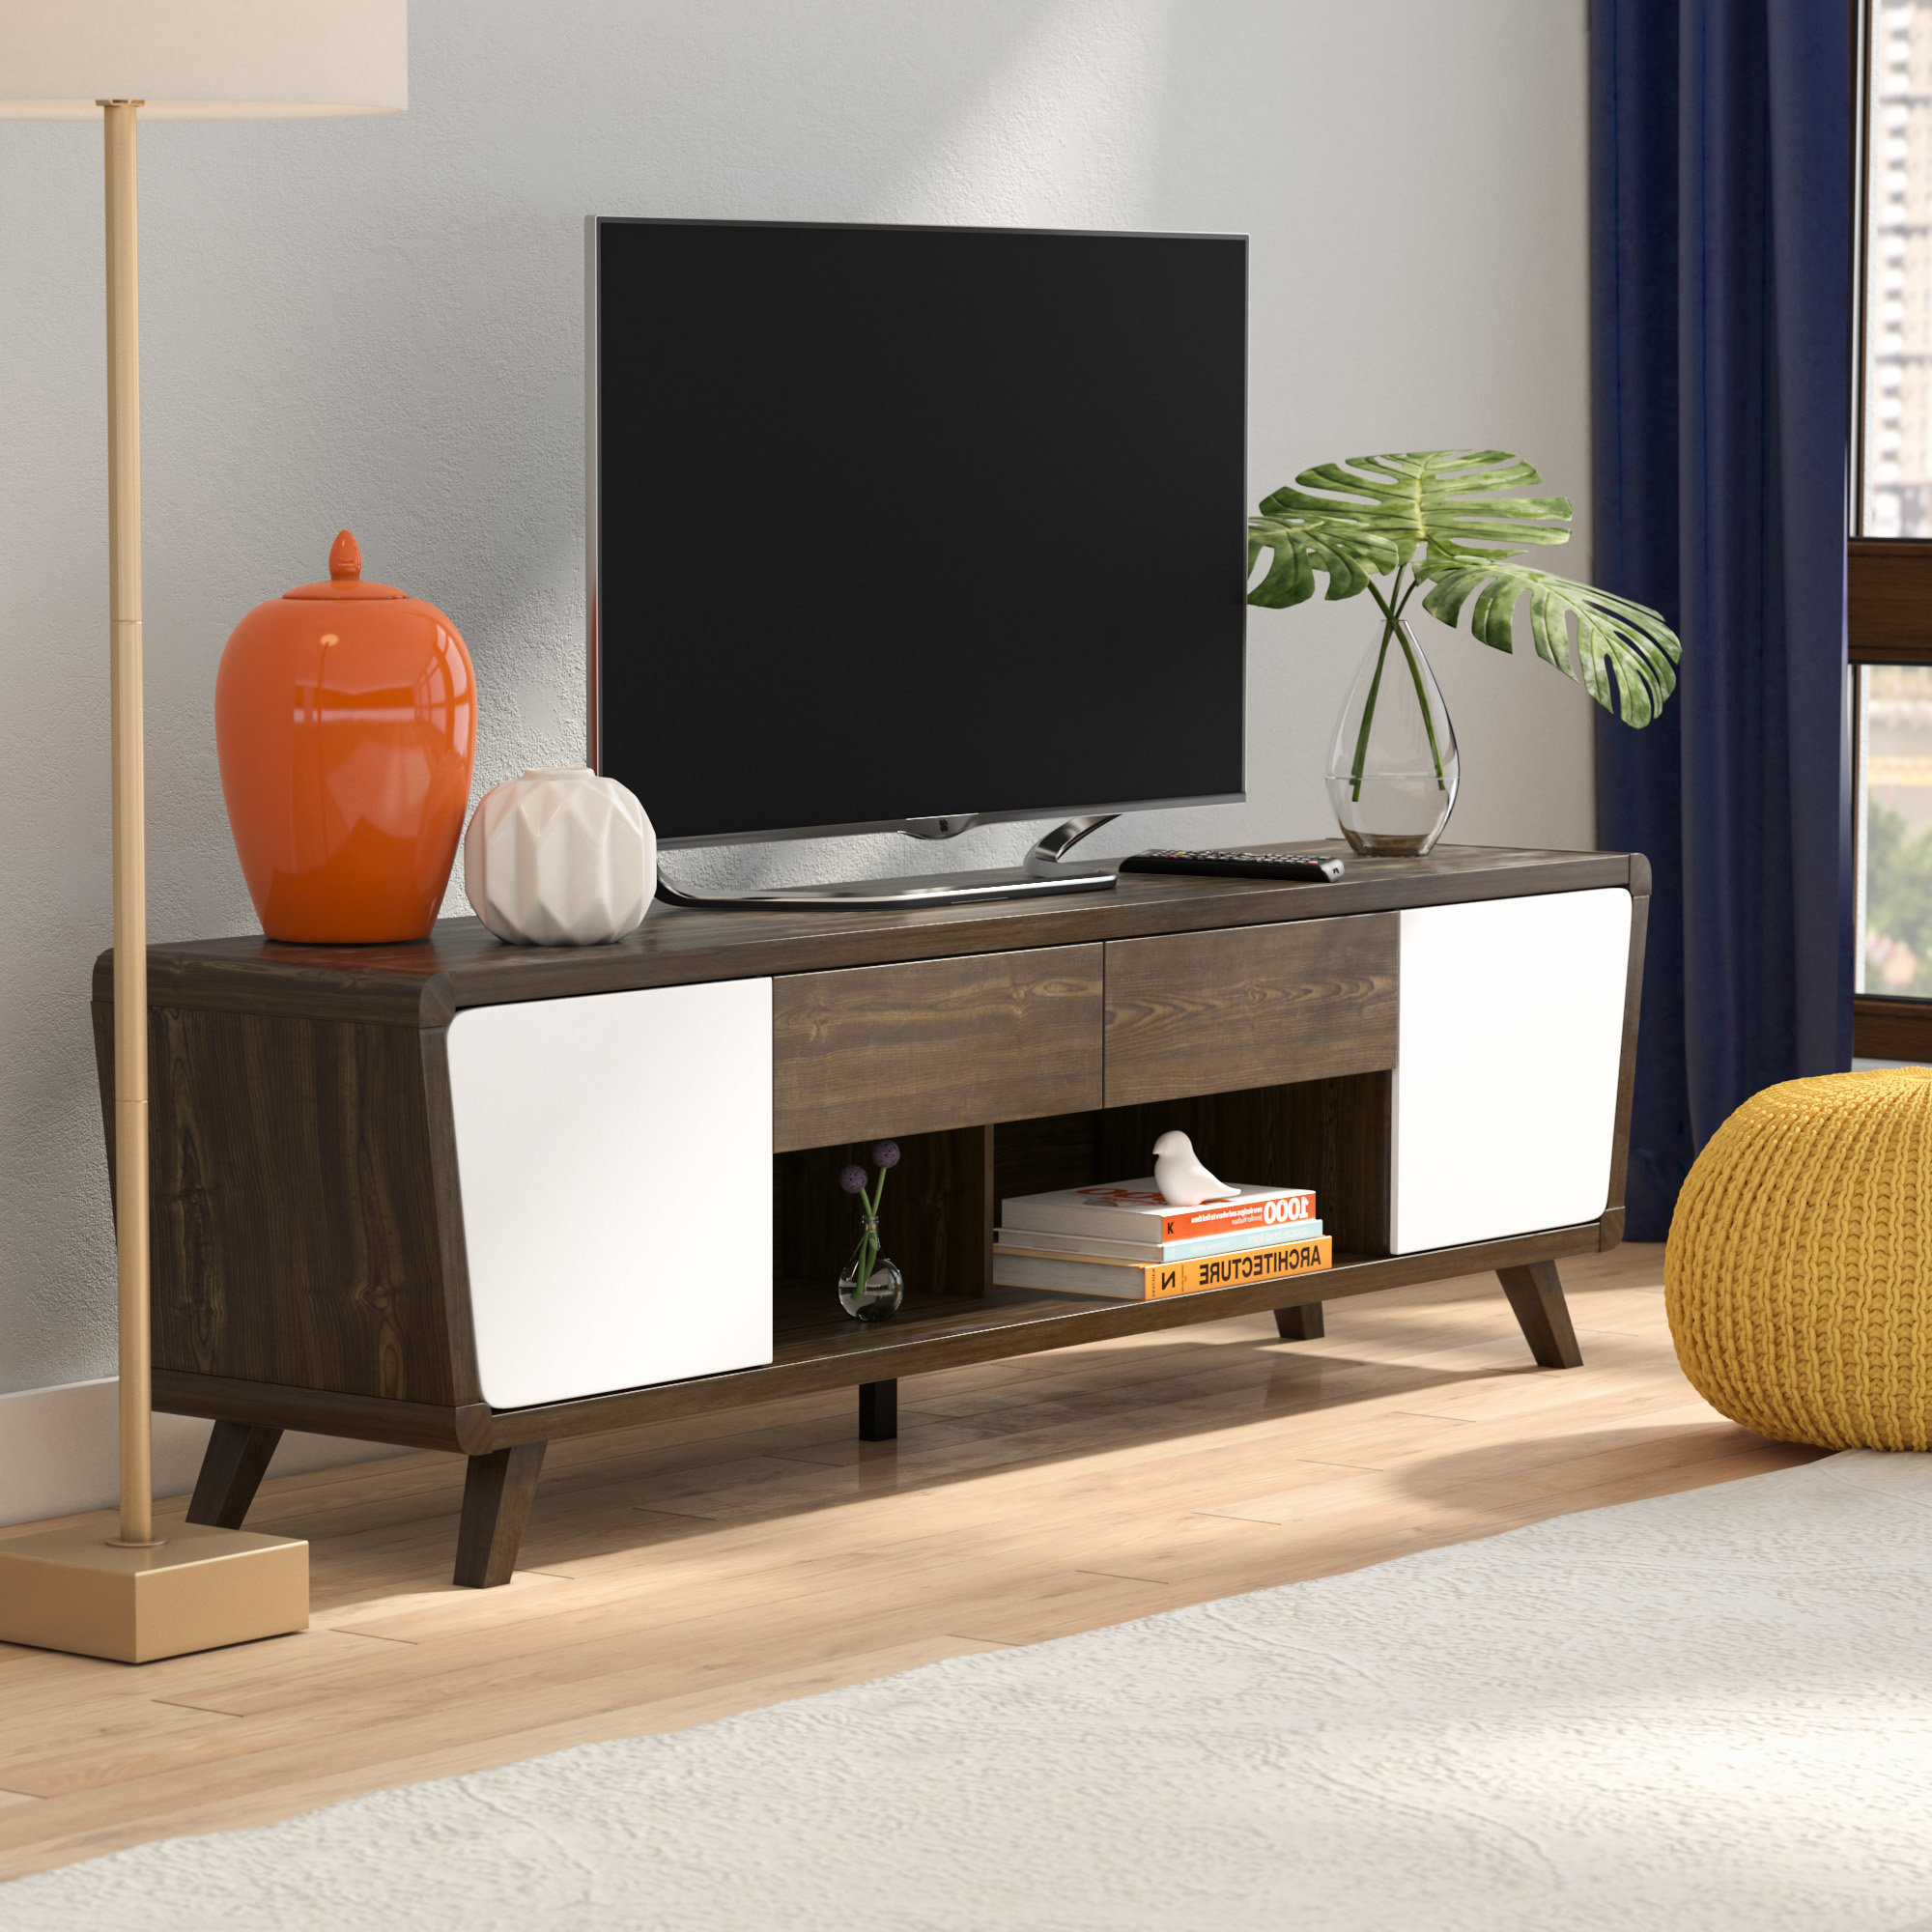 Modern Contemporary Tv Stands Throughout Well Known Modern Contemporary Tv Stands Wall Unit Interior Design Stand (View 13 of 20)